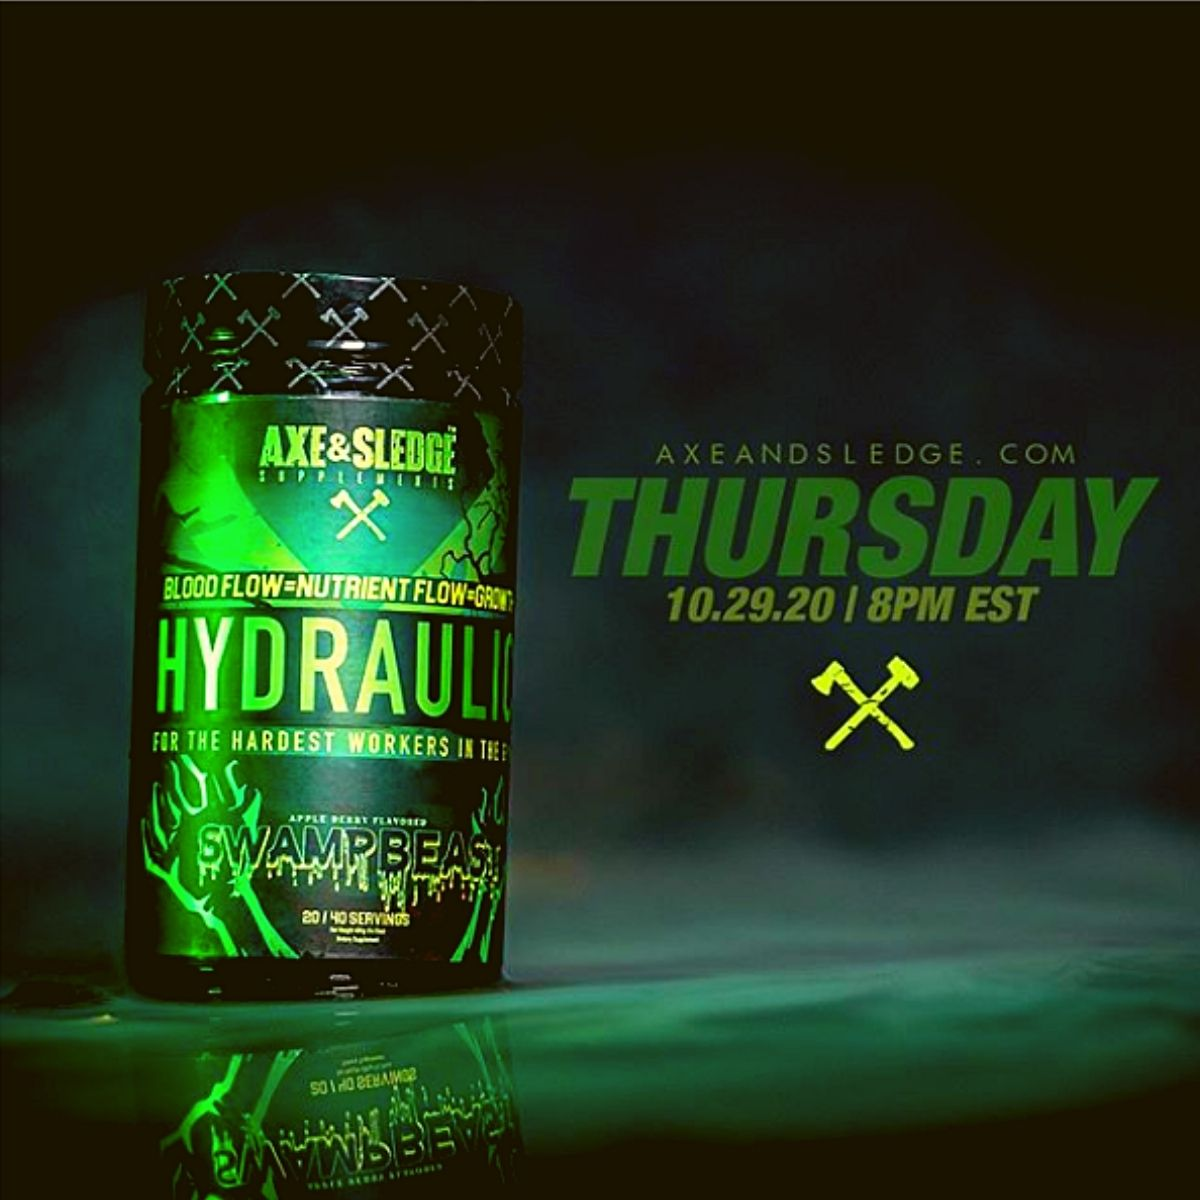 Axe & Sledge's Hydraulic Pre-Workout Gets the Swamp Beast Flavor